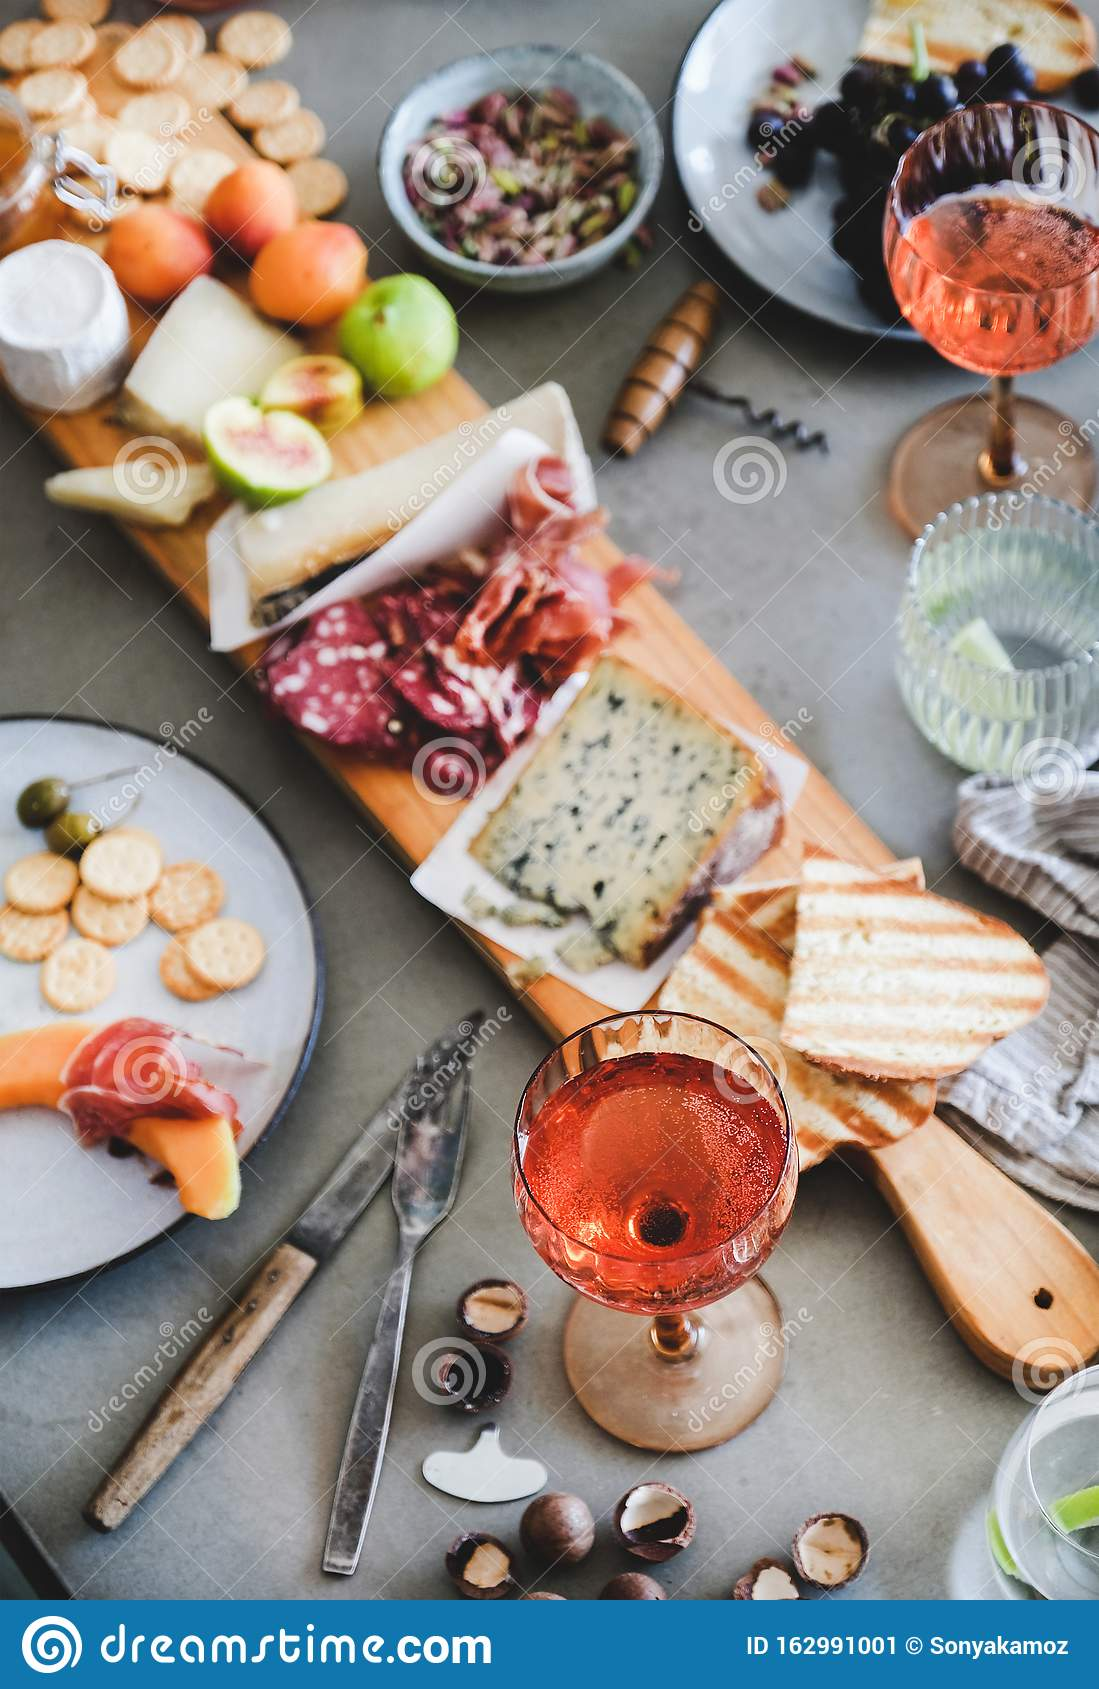 Mid Summer Picnic With Rose Wine Cheese Charcuterie Appetizers And Fruits Stock Image Image Of Olive Board 162991001